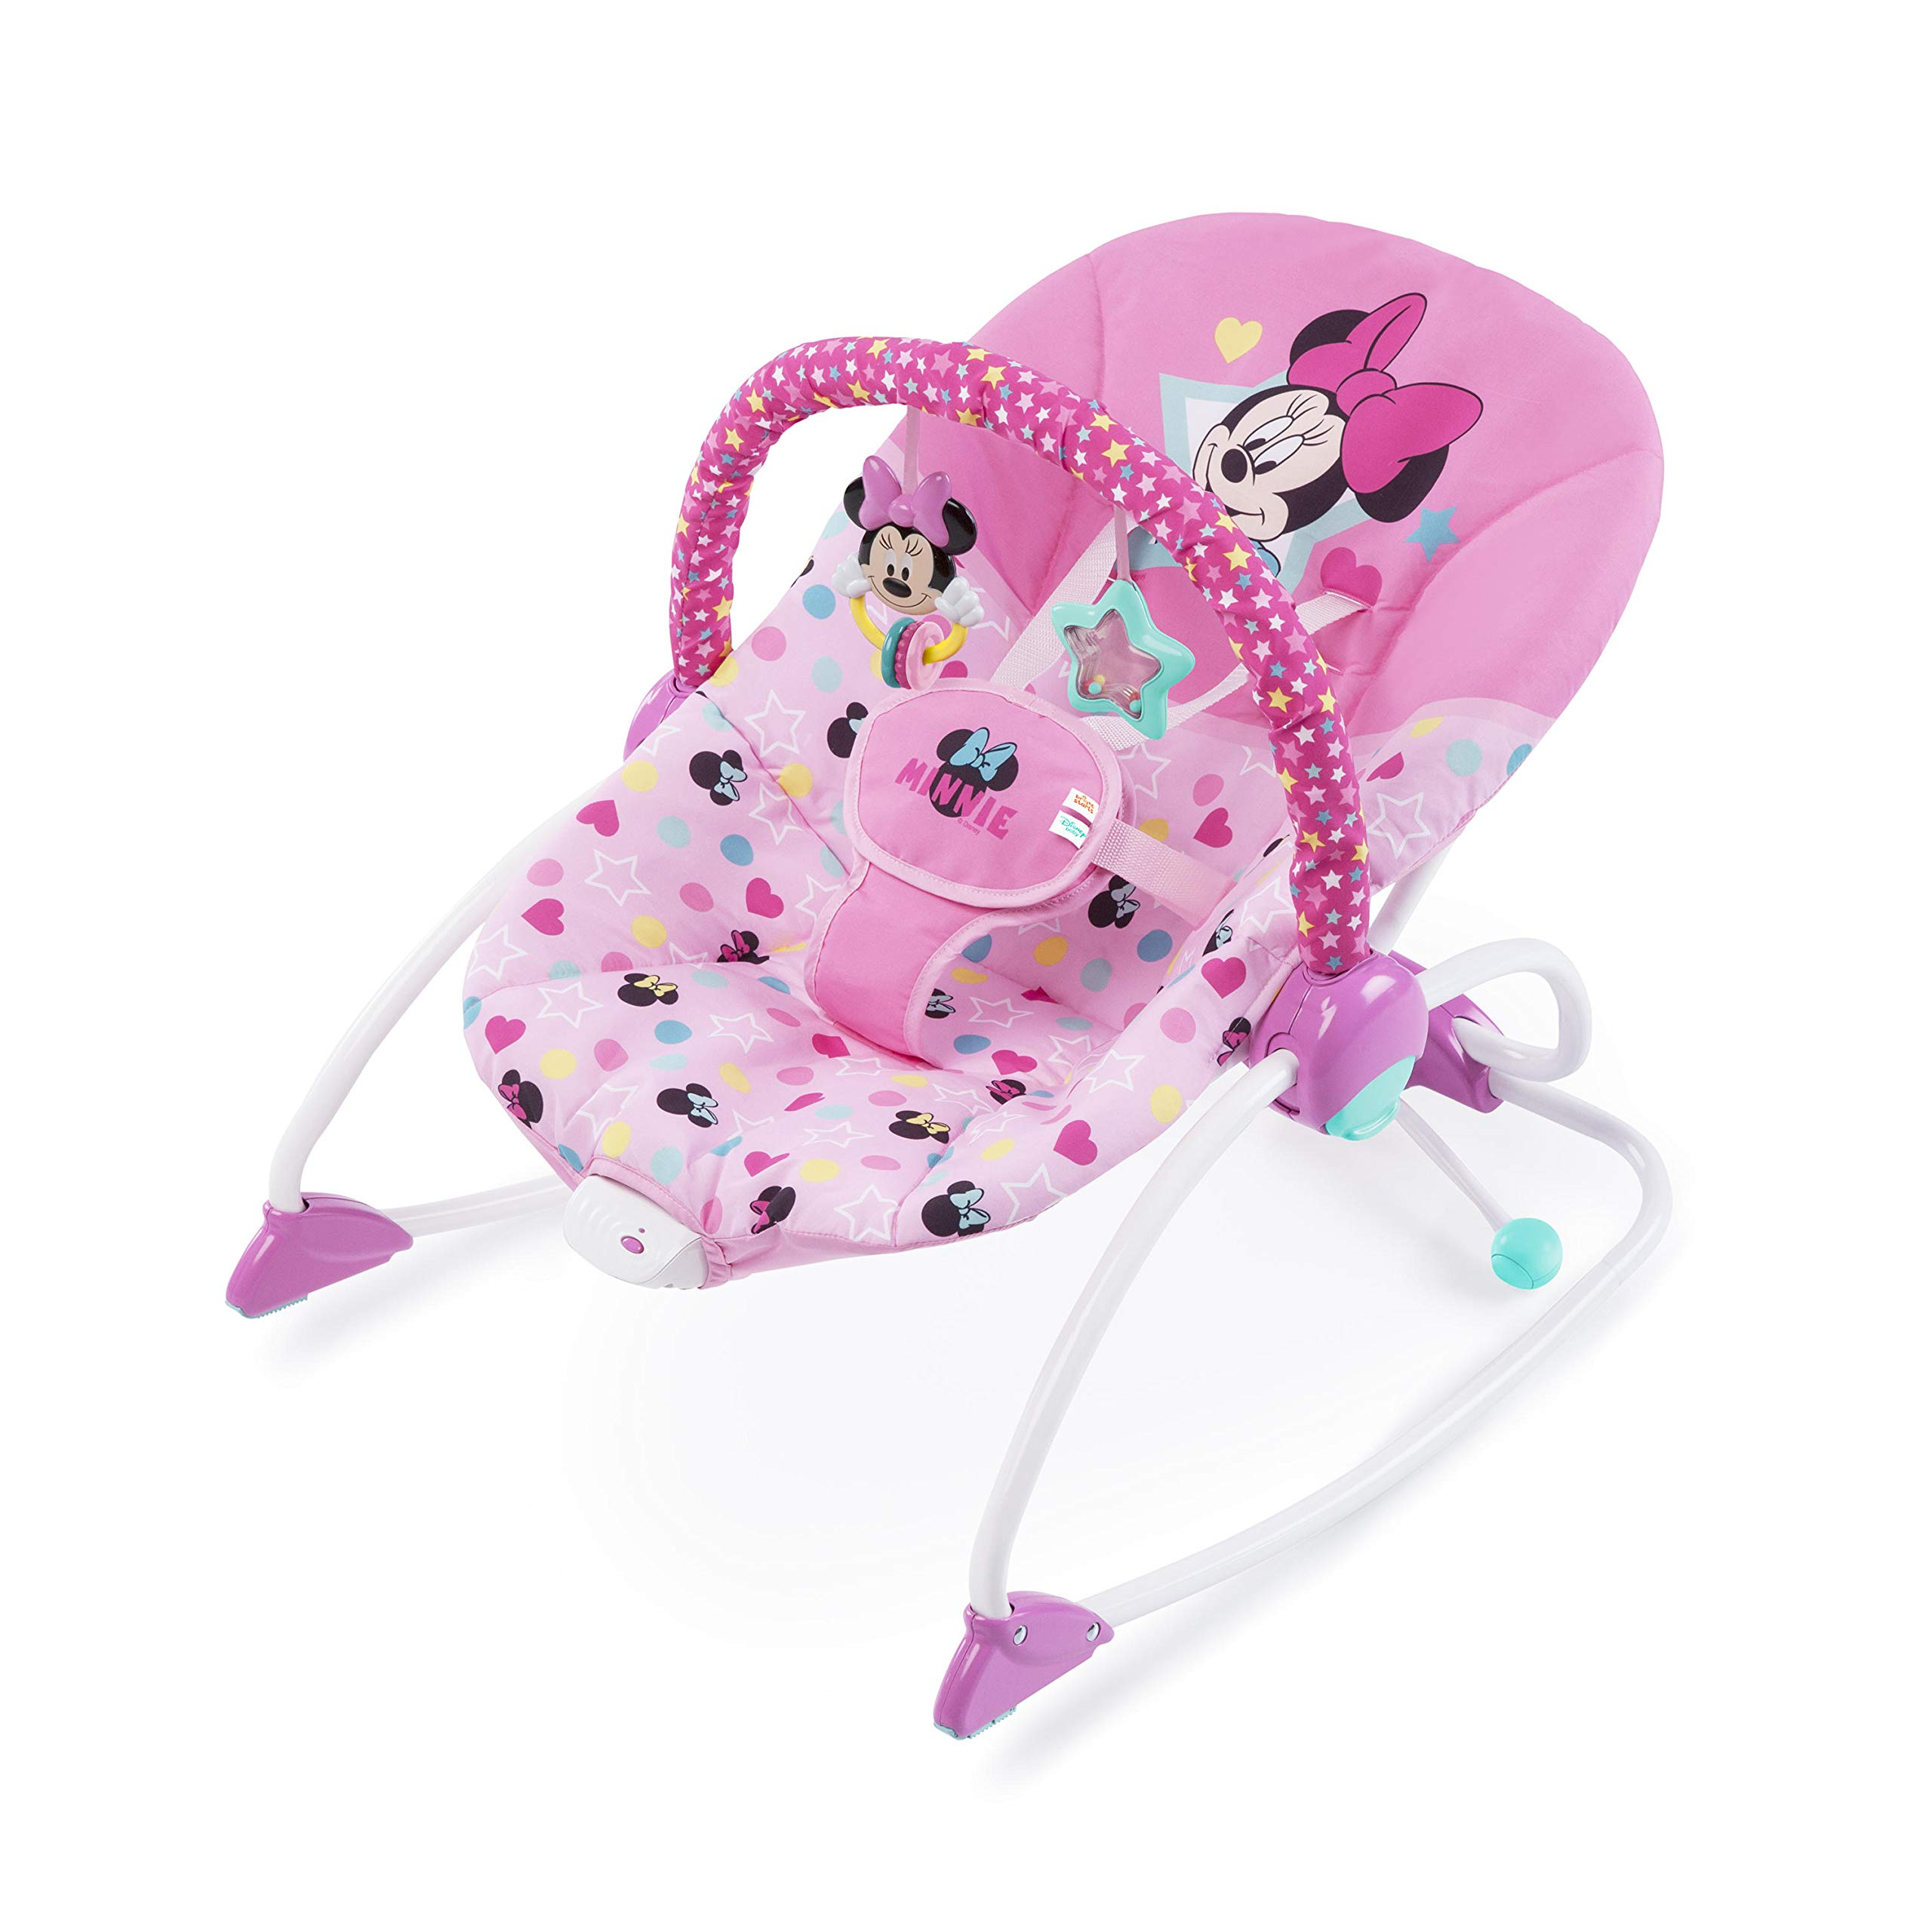 Minnie Mouse Stars and Smiles Baby Girl Infant to Toddler Activity and Entertainment Rocker with Removable Toy Bar in Pink by Minnie Mouse